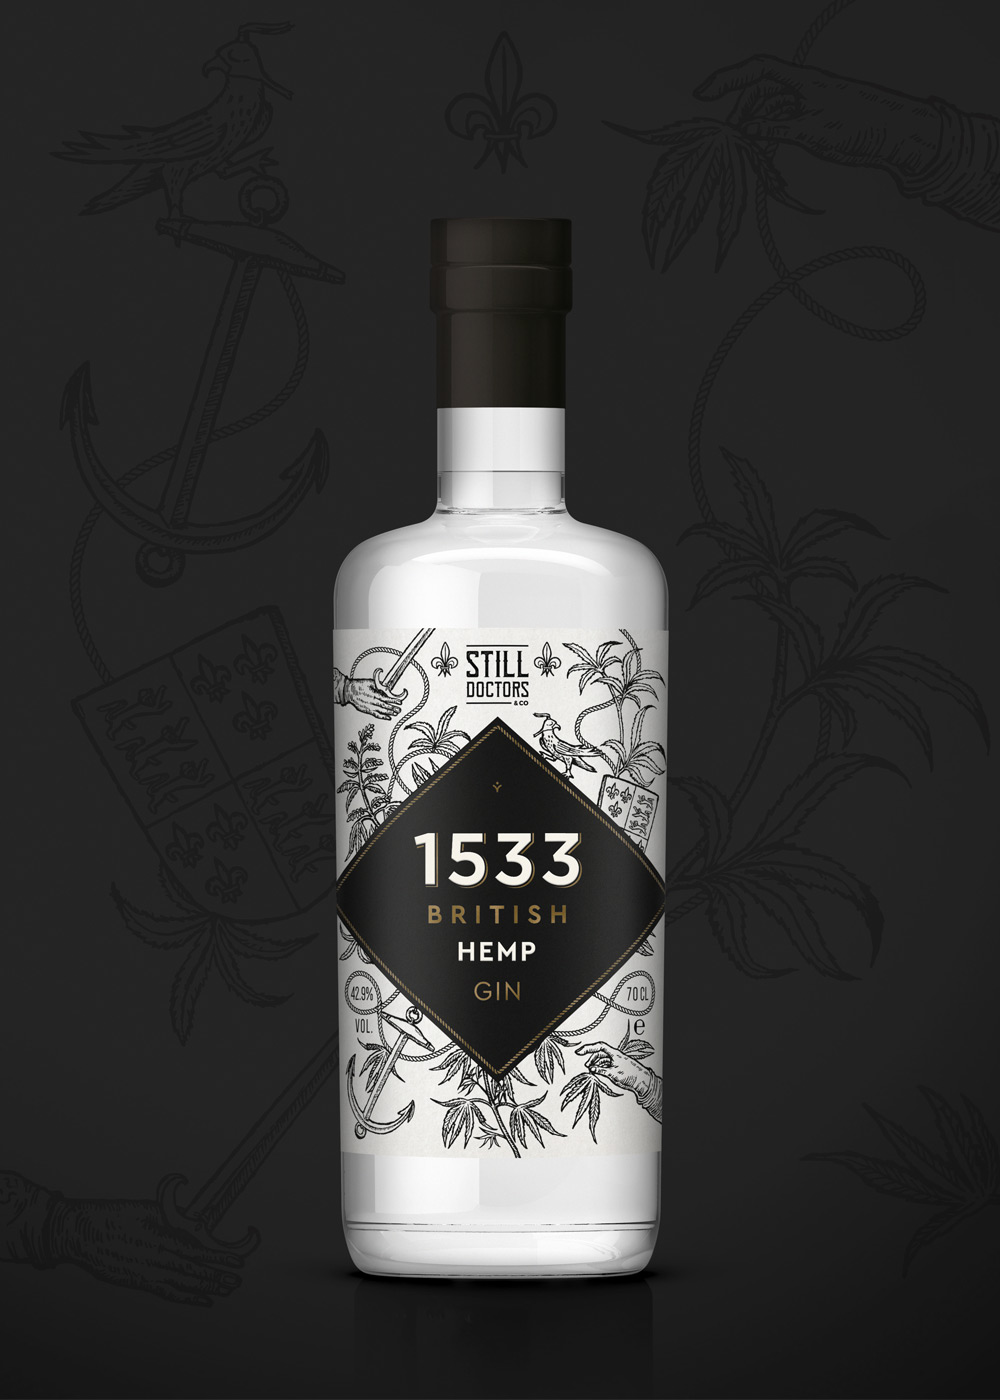 Gin Label design branding-1533 Hemp gin by Wild-Bear-Designs-pic2